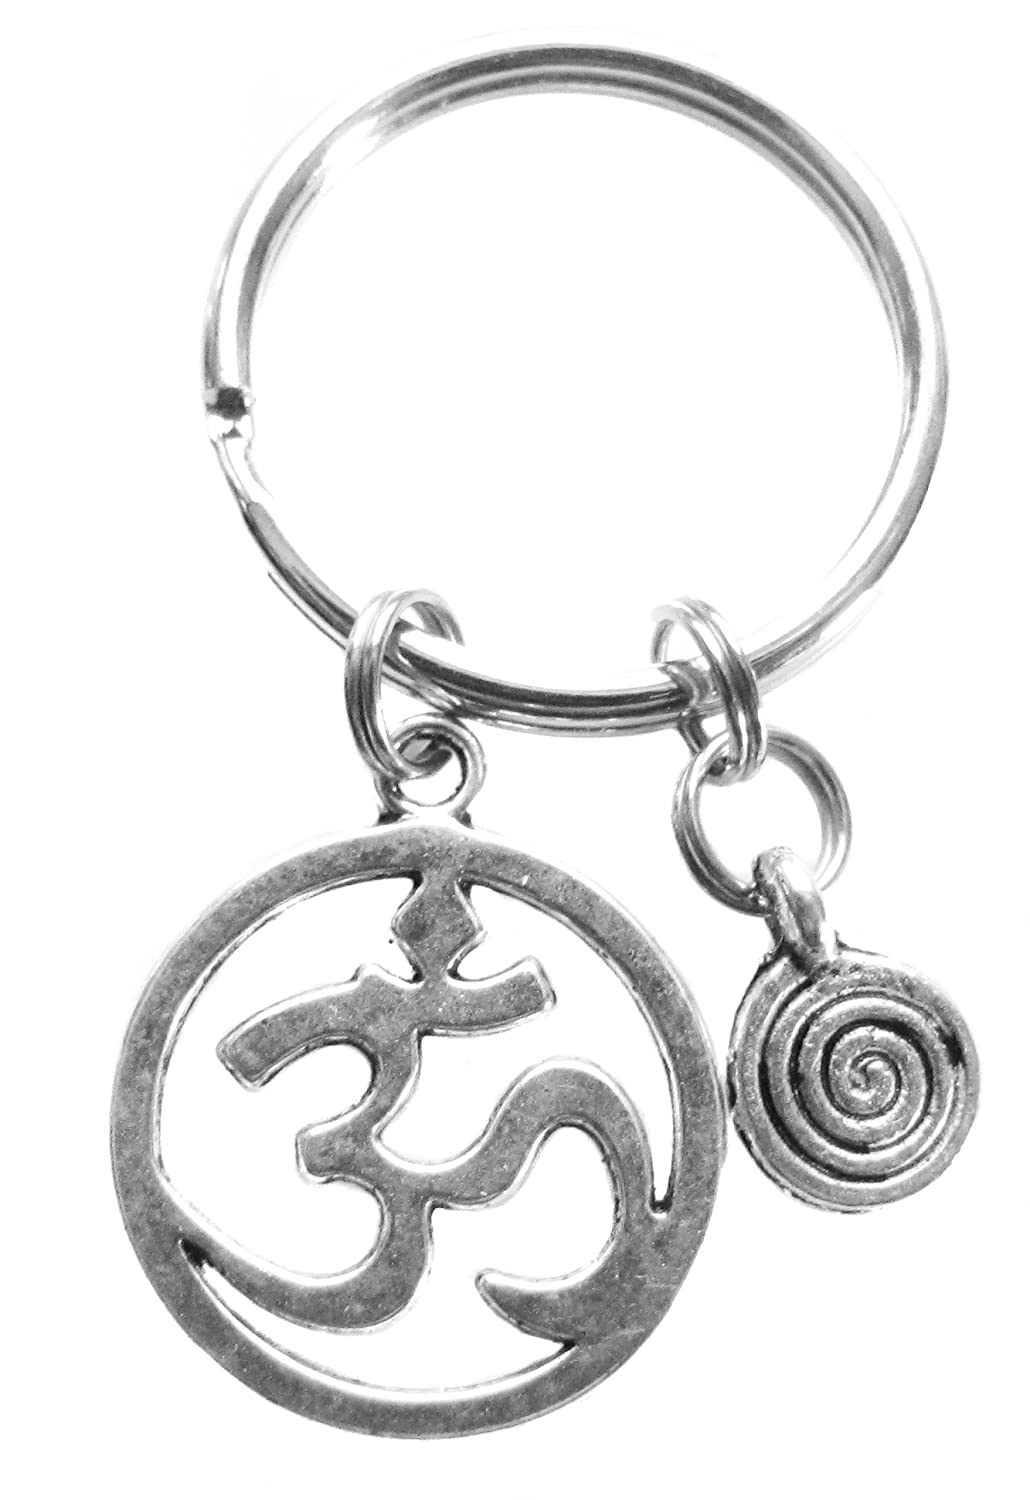 Om Aum Ohm and Spiral Yoga Reiki Key Chain